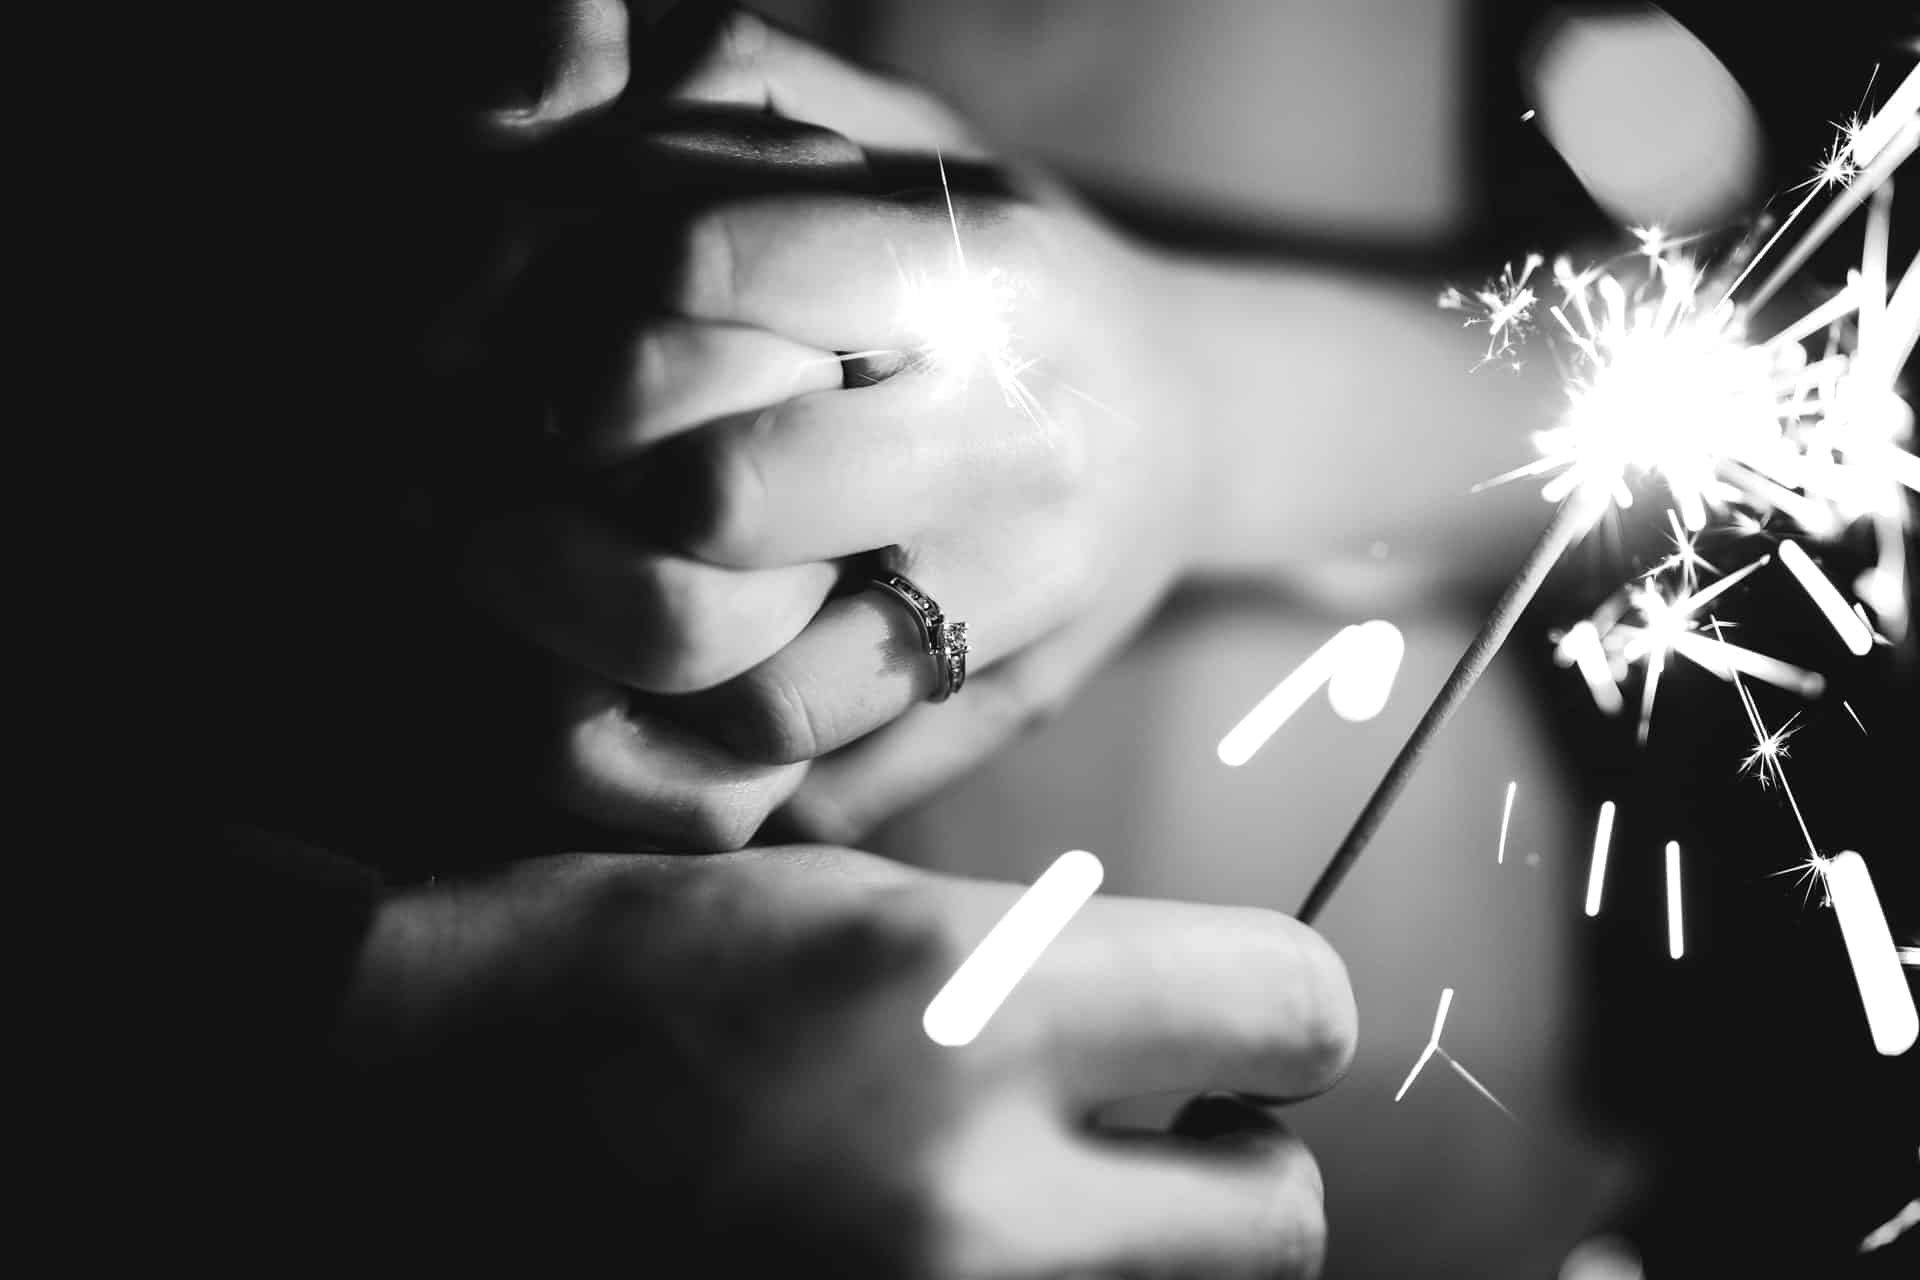 black and white image of holding hands with a sparkler illuminating an engagement ring